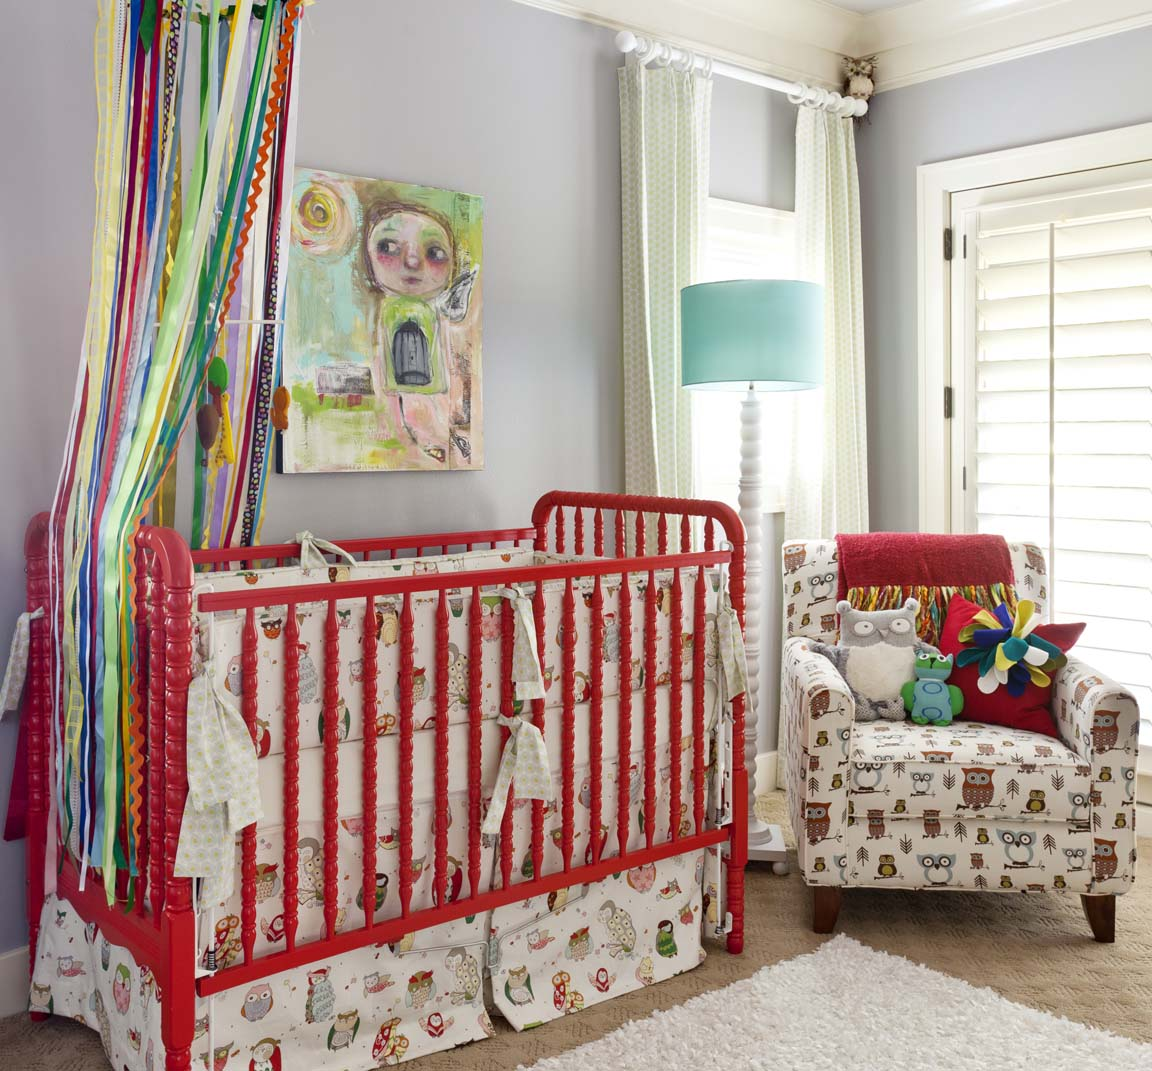 Lovely Red Iron crib